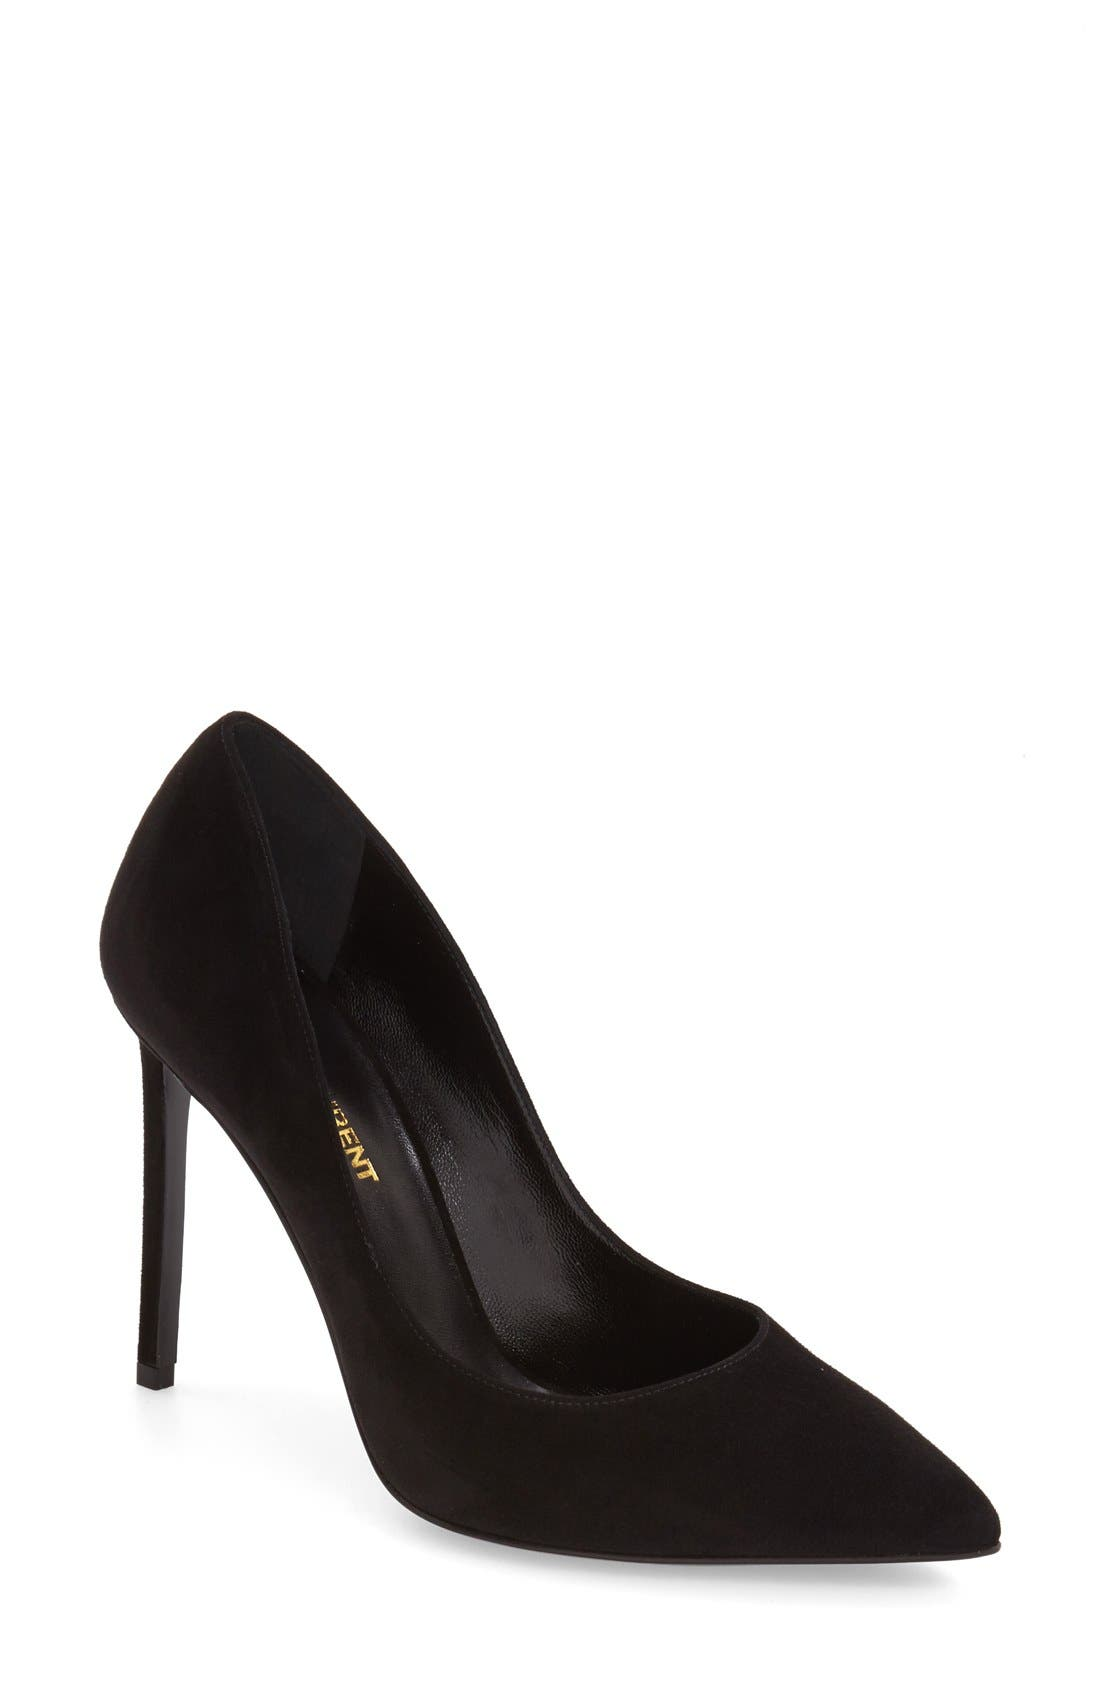 Alternate Image 1 Selected - Saint Laurent 'Paris Skinny' Pointy Toe Pump (Women)